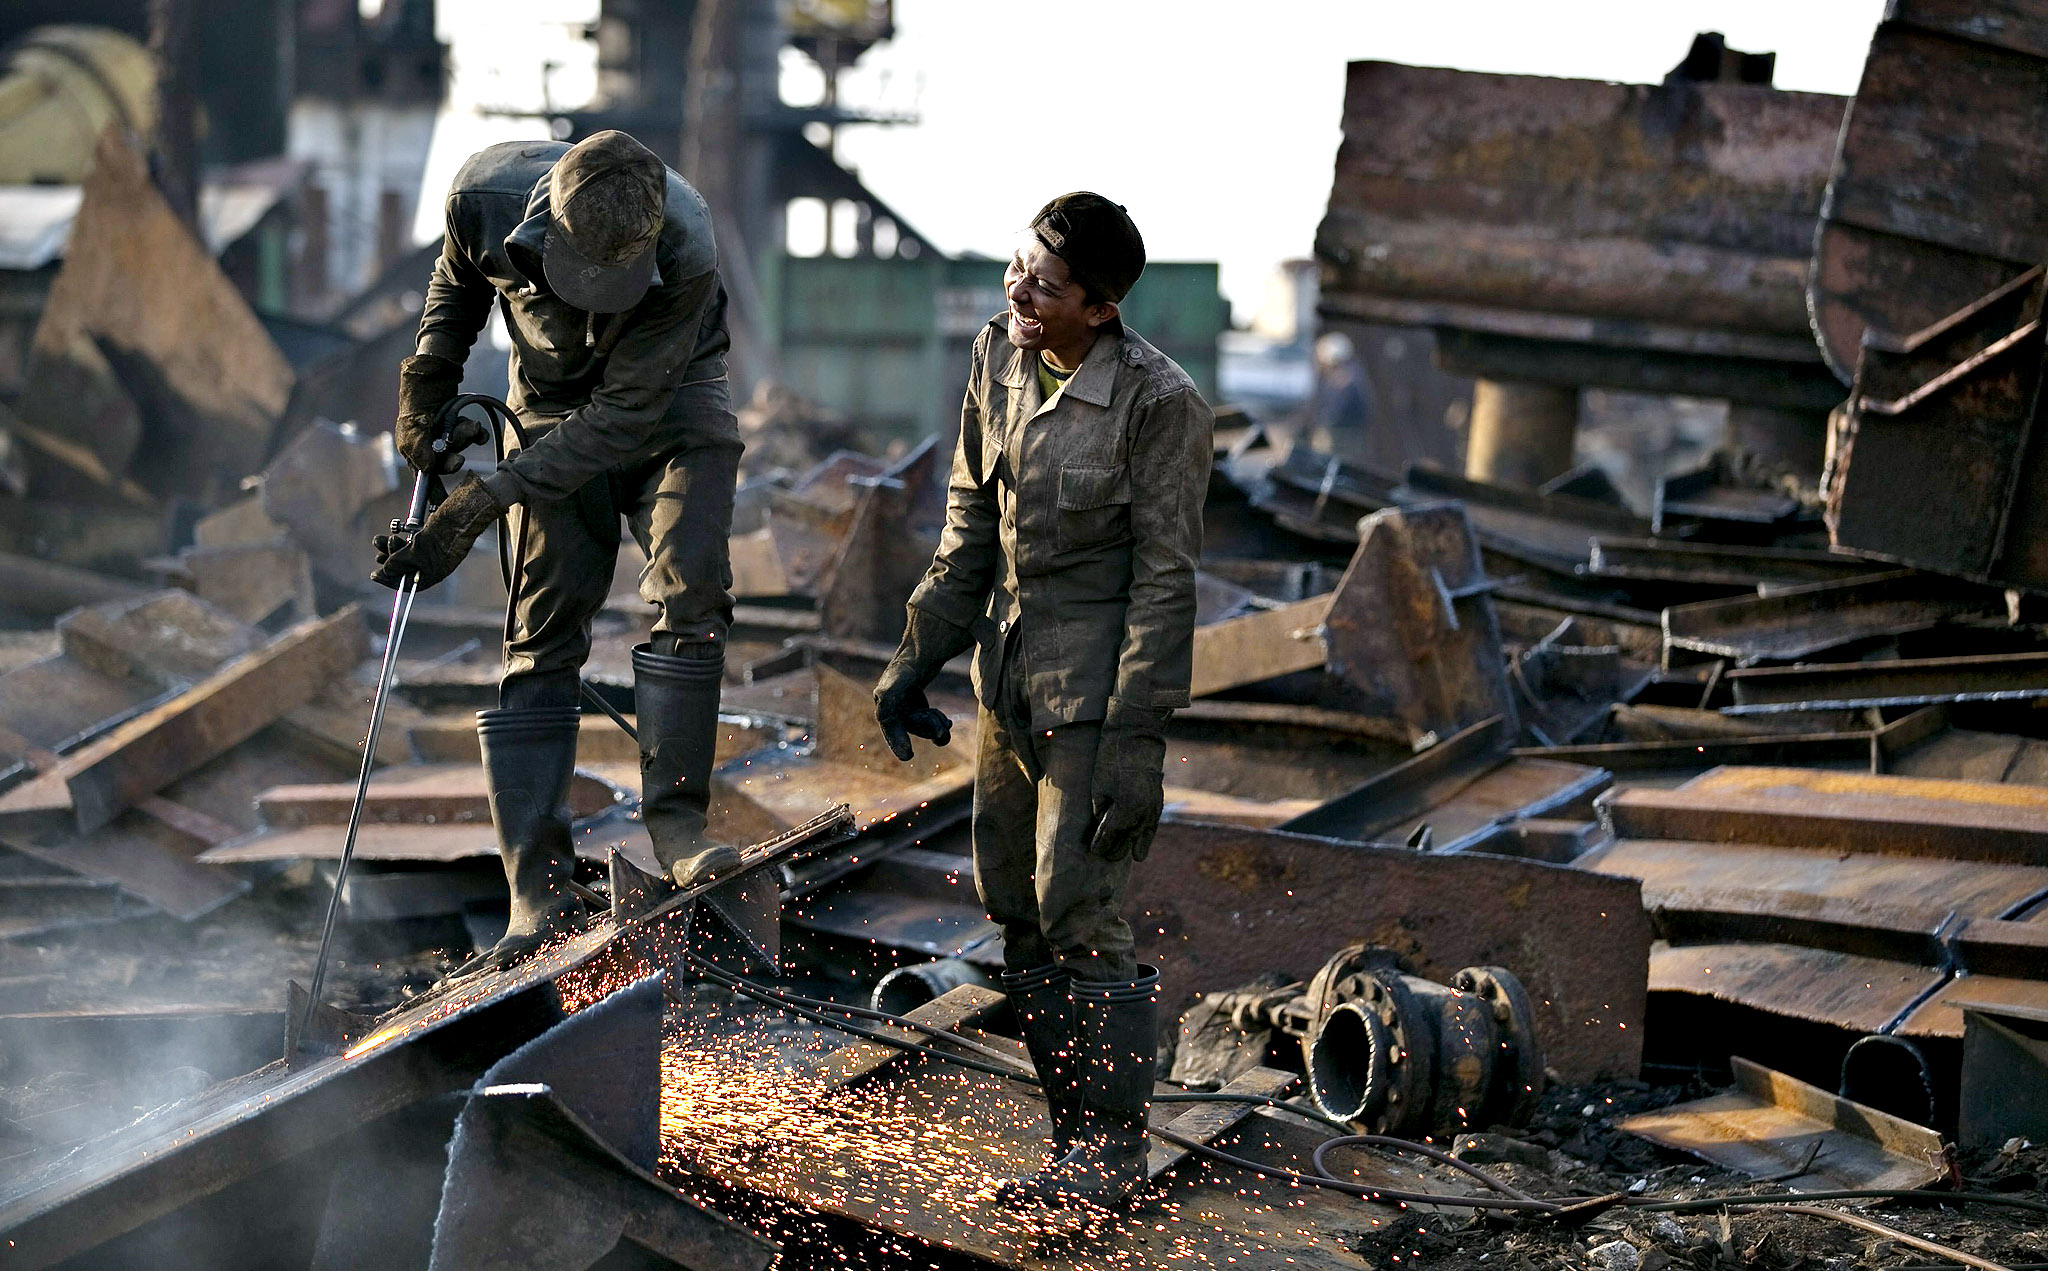 Workers chat while they break up part of an old ship for scrap metal near Tanjung Priok port, Indonesia's largest seaport, in Jakarta September 22, 2014.